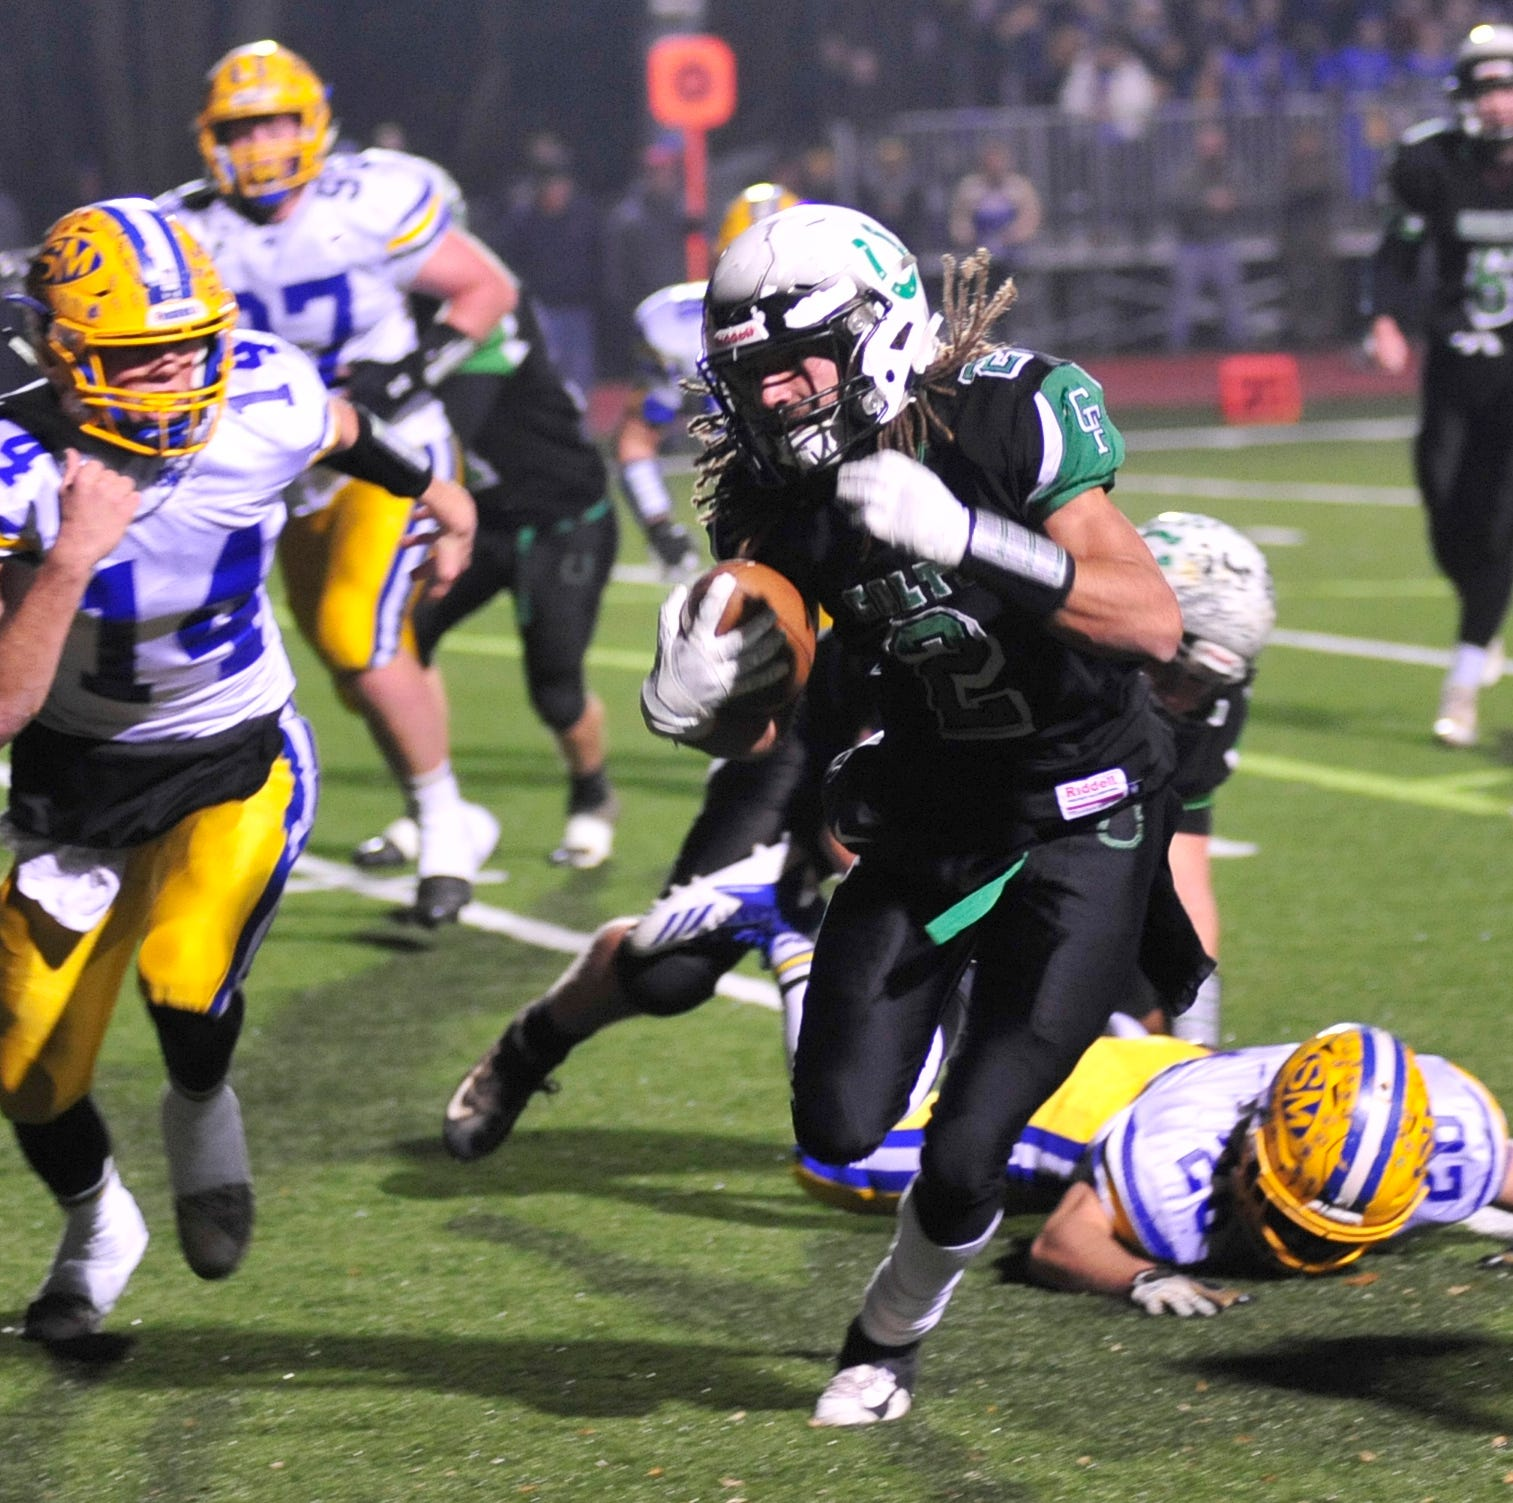 Clear Fork Colts see historic season come to an end in regional final loss to St. Marys